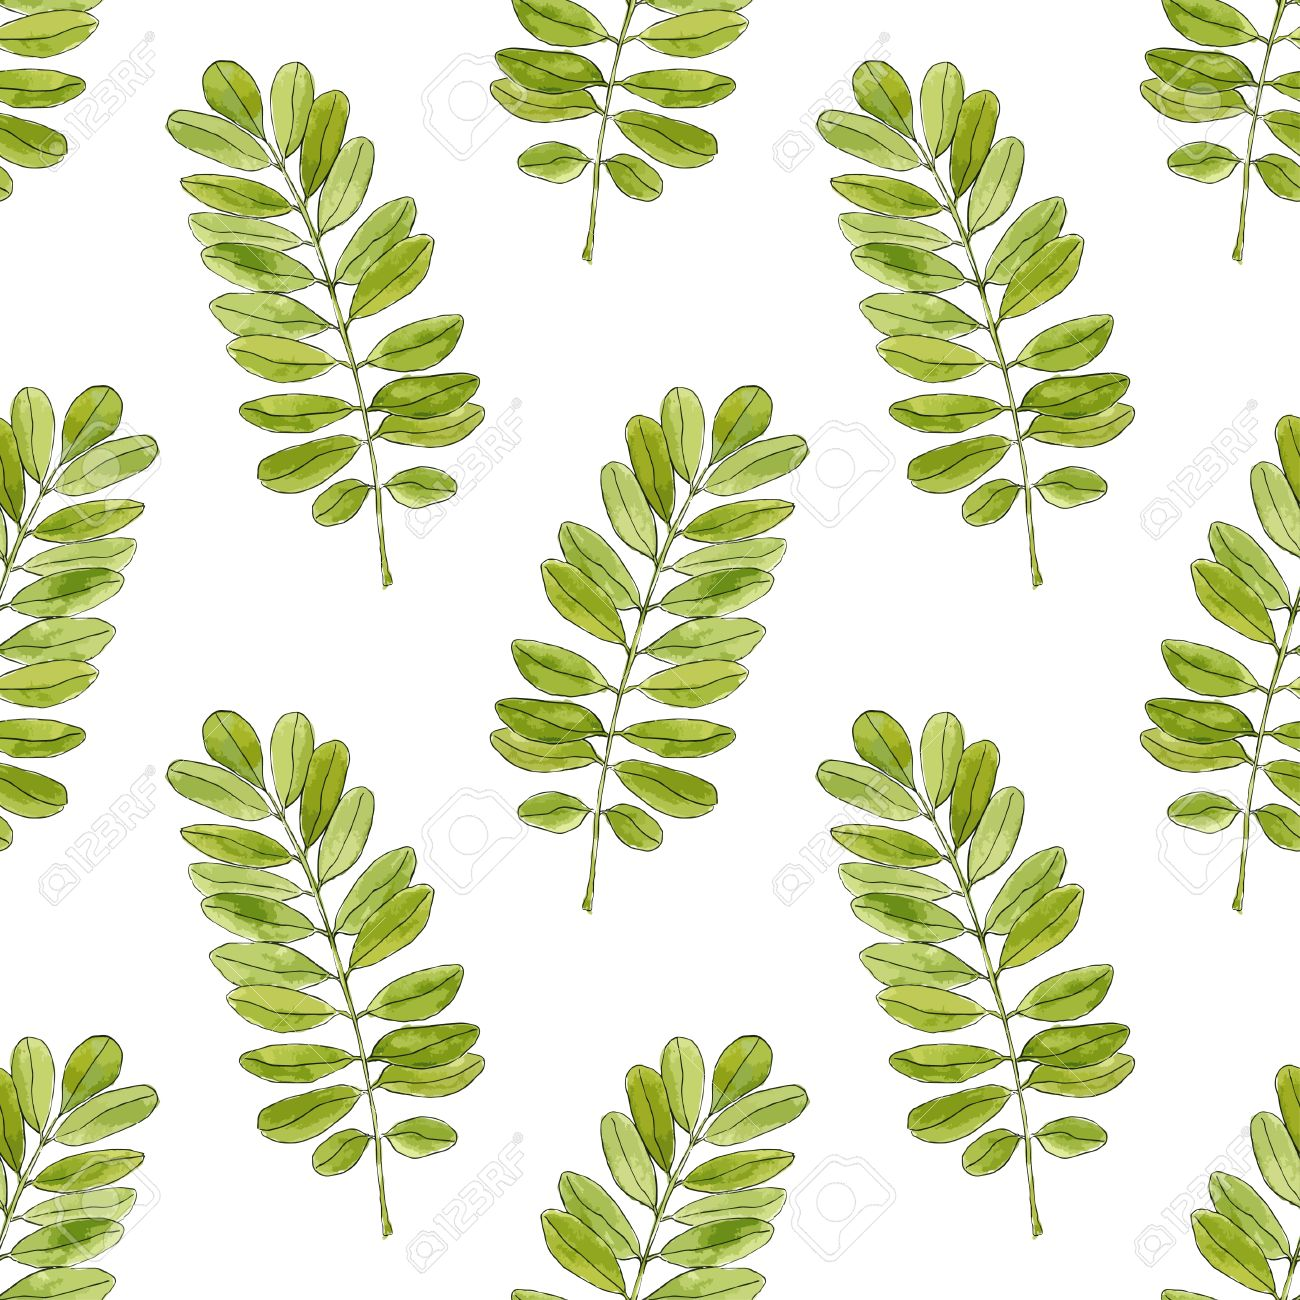 Watercolor Seamless Pattern With Acacia Leaves Hand Drawn Vector